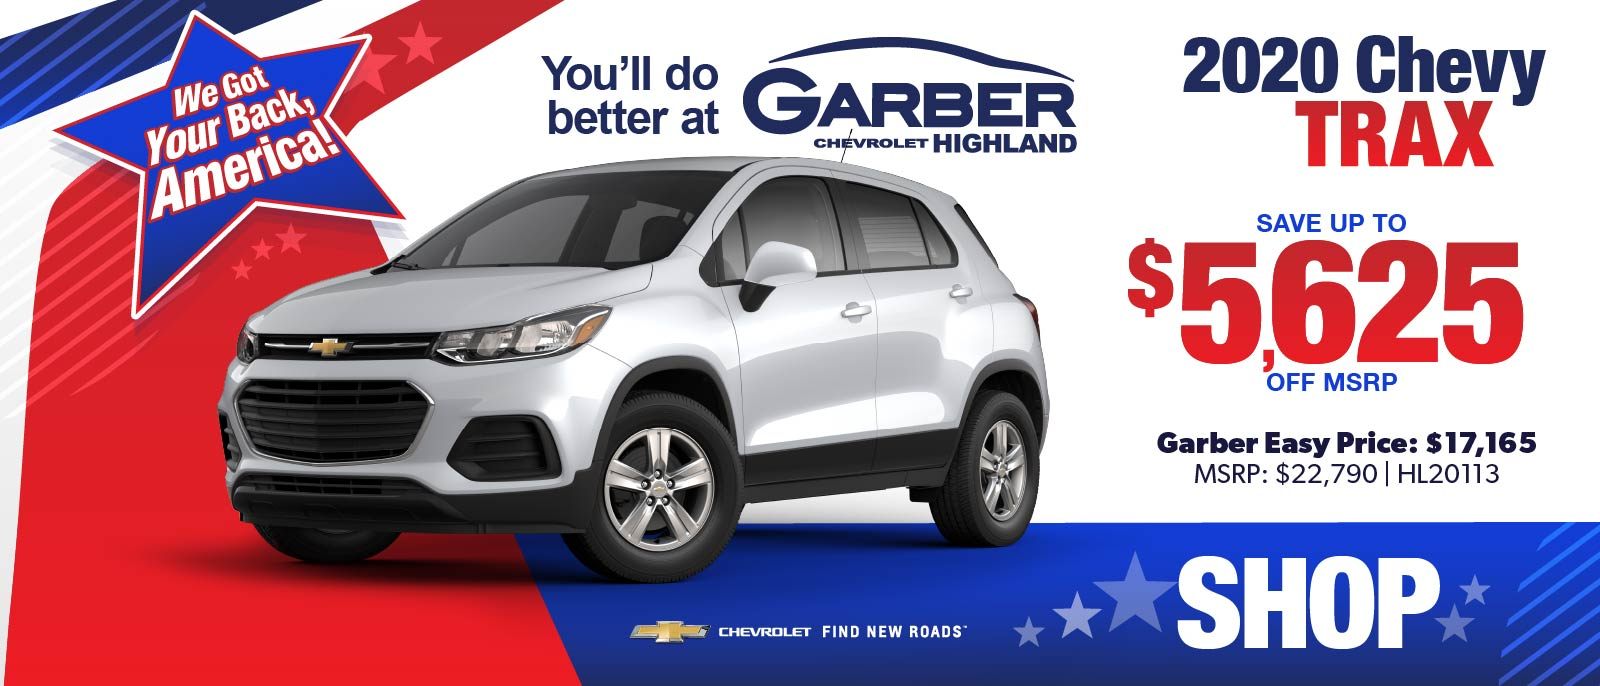 2020 Chevy Trax - SAVE up to $5625 off MSRP | Gaber Easy Price: $17,165 | MSRP $22,790 #HL20113